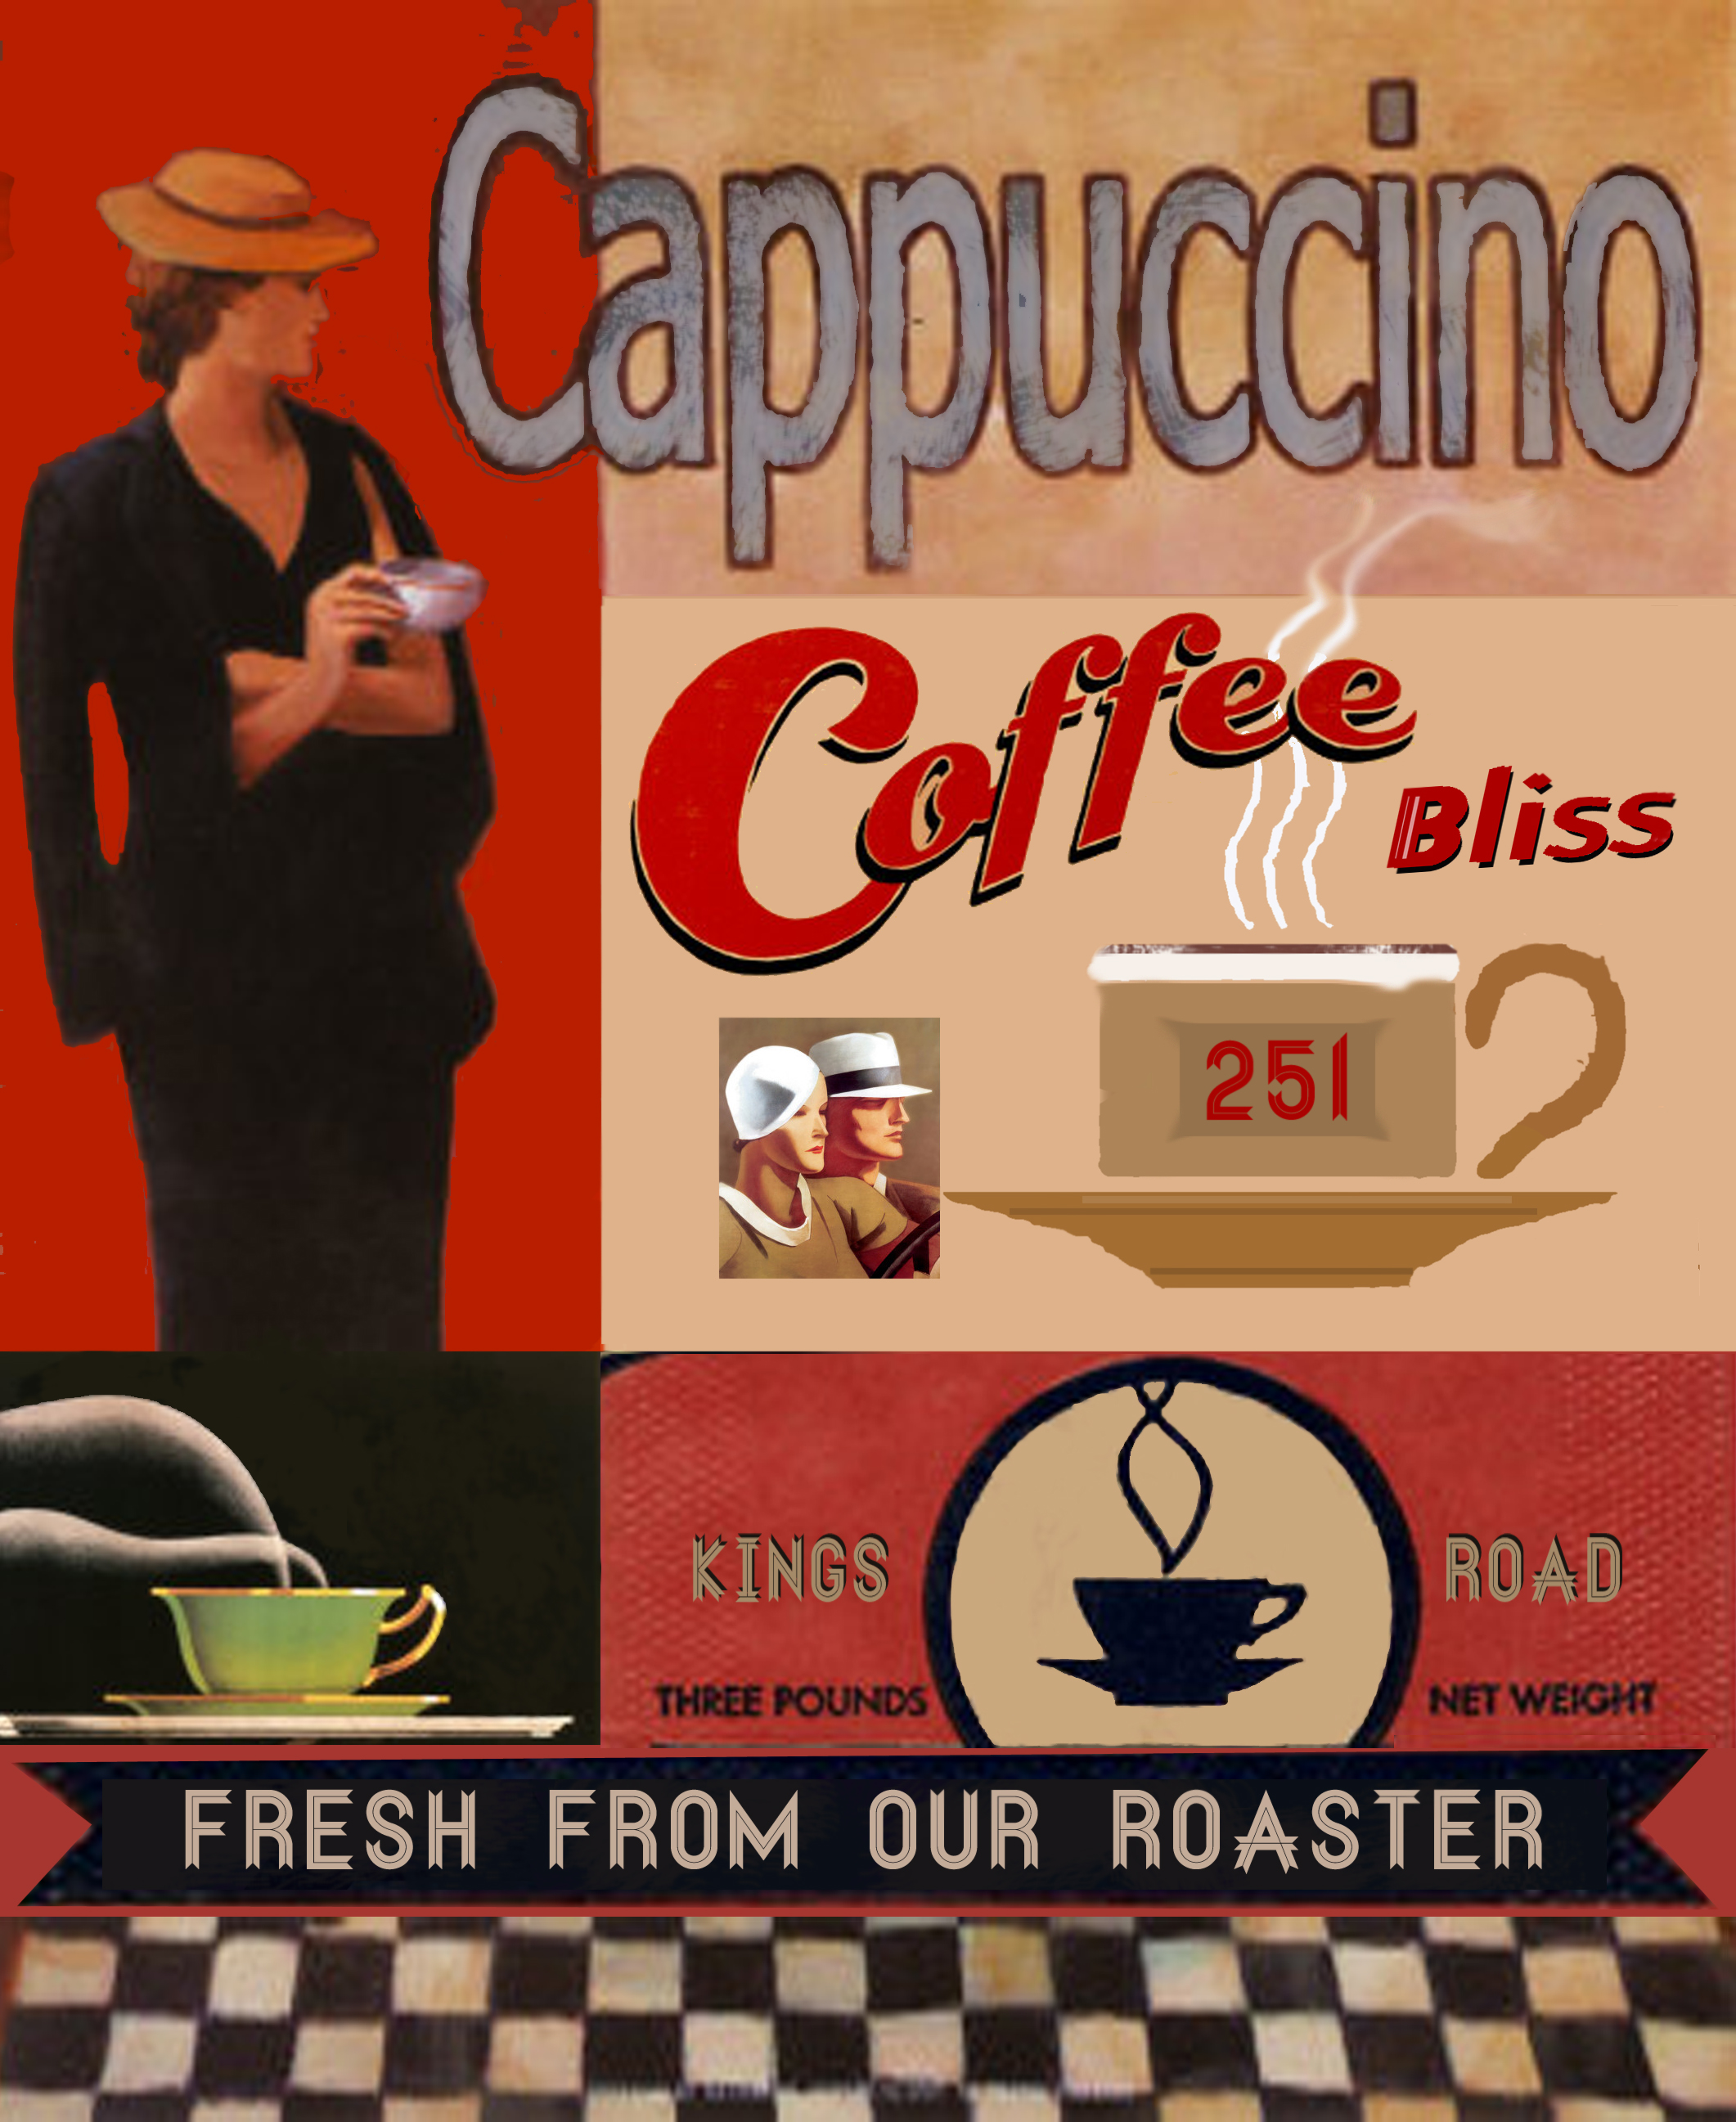 New Retro Caffe Poster Design Ngs Ngs